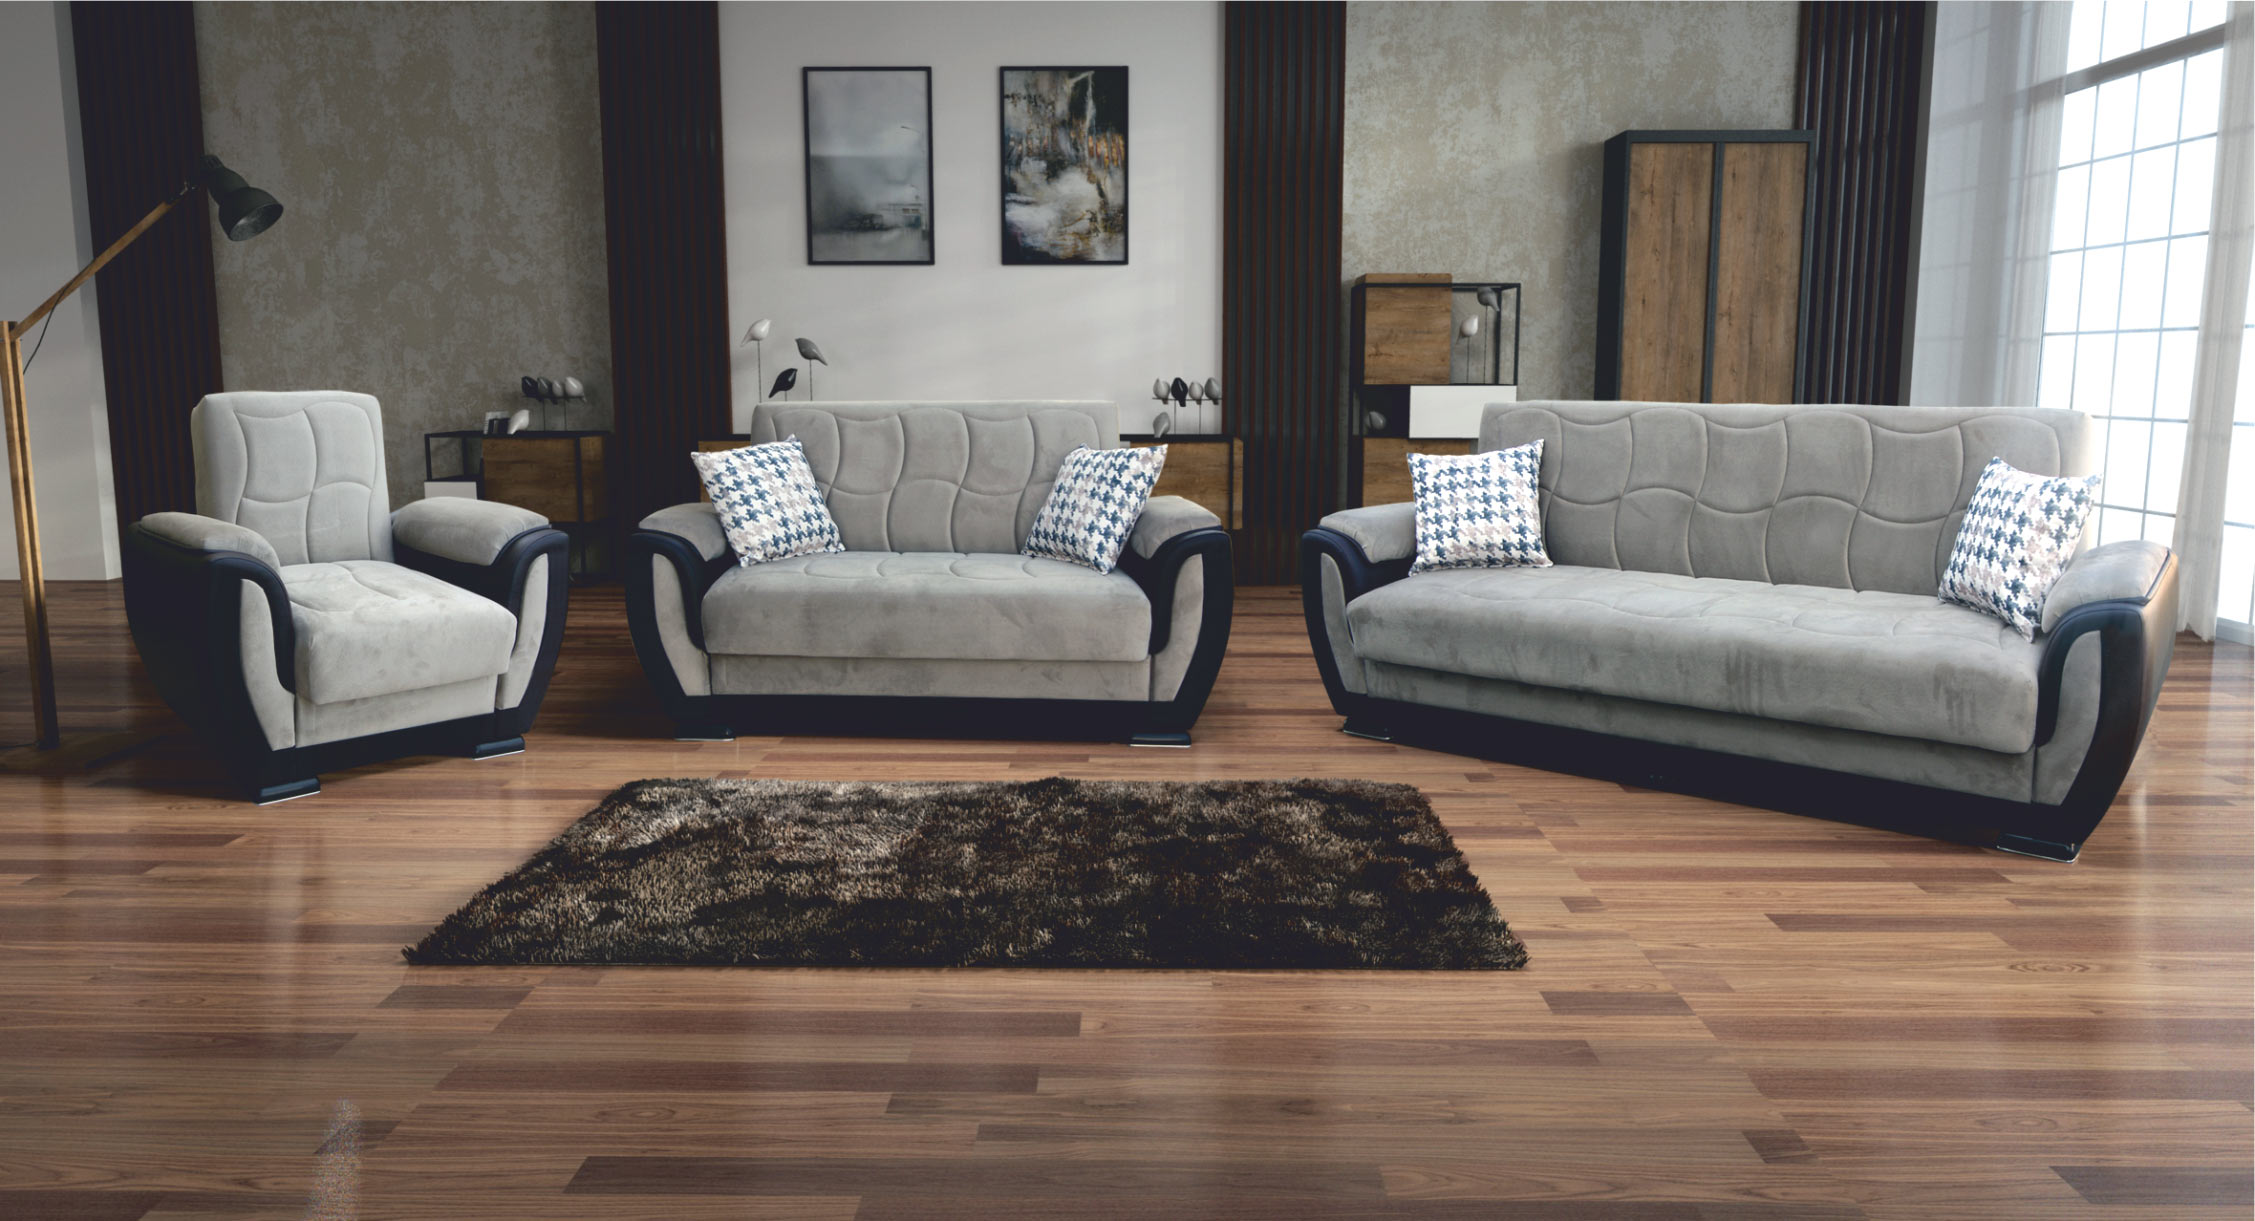 Gray Sofas For Living Room Scotty Gray Sofa By Skyler Designs